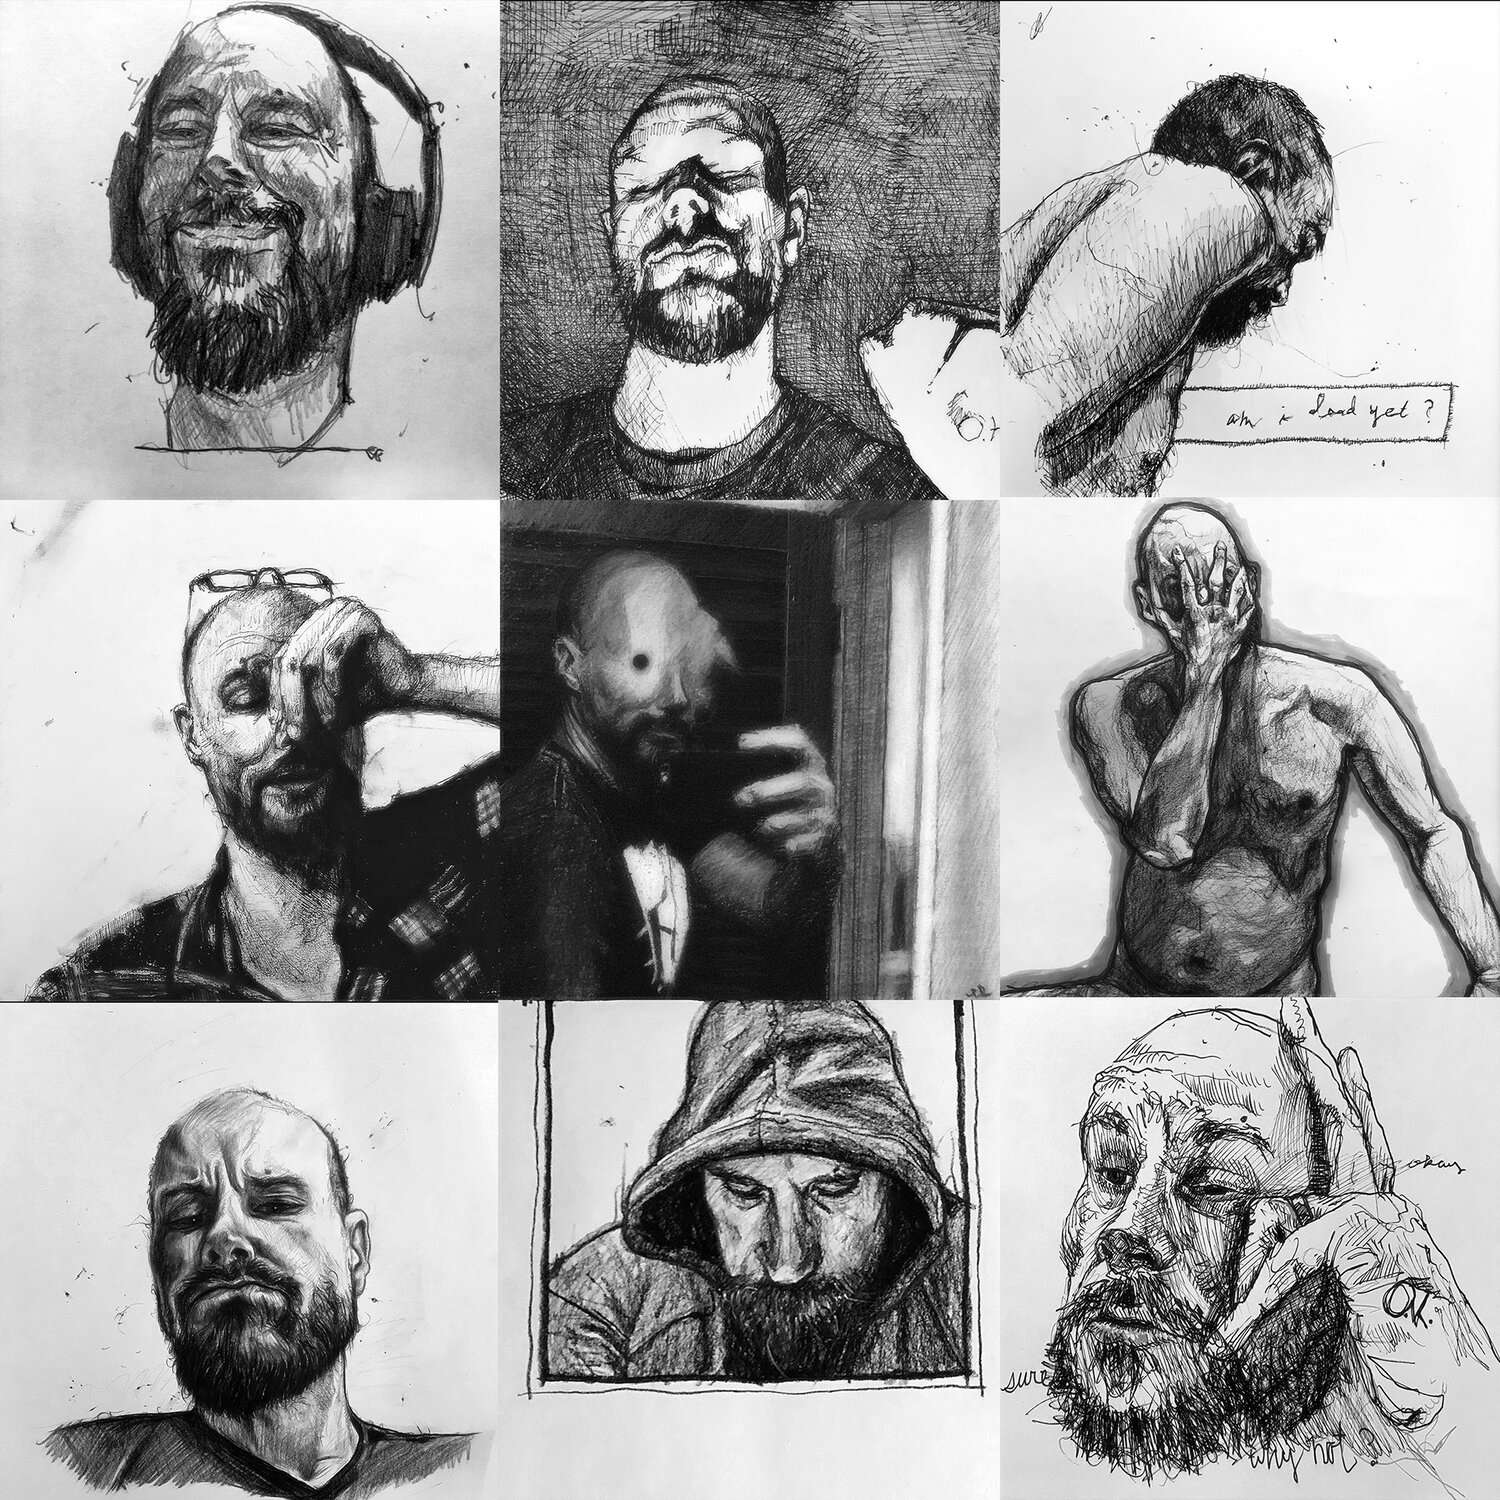 misc. selfies - I sketch myself a lot, because what kind of artist would I be if I weren't also a massive narcissist? Honestly though, I consider myself a hideously unattractive person, and whatever limited interest I have in portraiture is certainly not rooted in flattery of any kind. I tend to hate art that depicts pretty people doing pretty-people things. I admire the portraiture of expressionists like Schiele and Freud and Dix. Studying myself is sort of like studying some kind of grotesque hobgoblin, a bizarre swell of whiskering, oily flesh, sagging muscles, and awkward features.